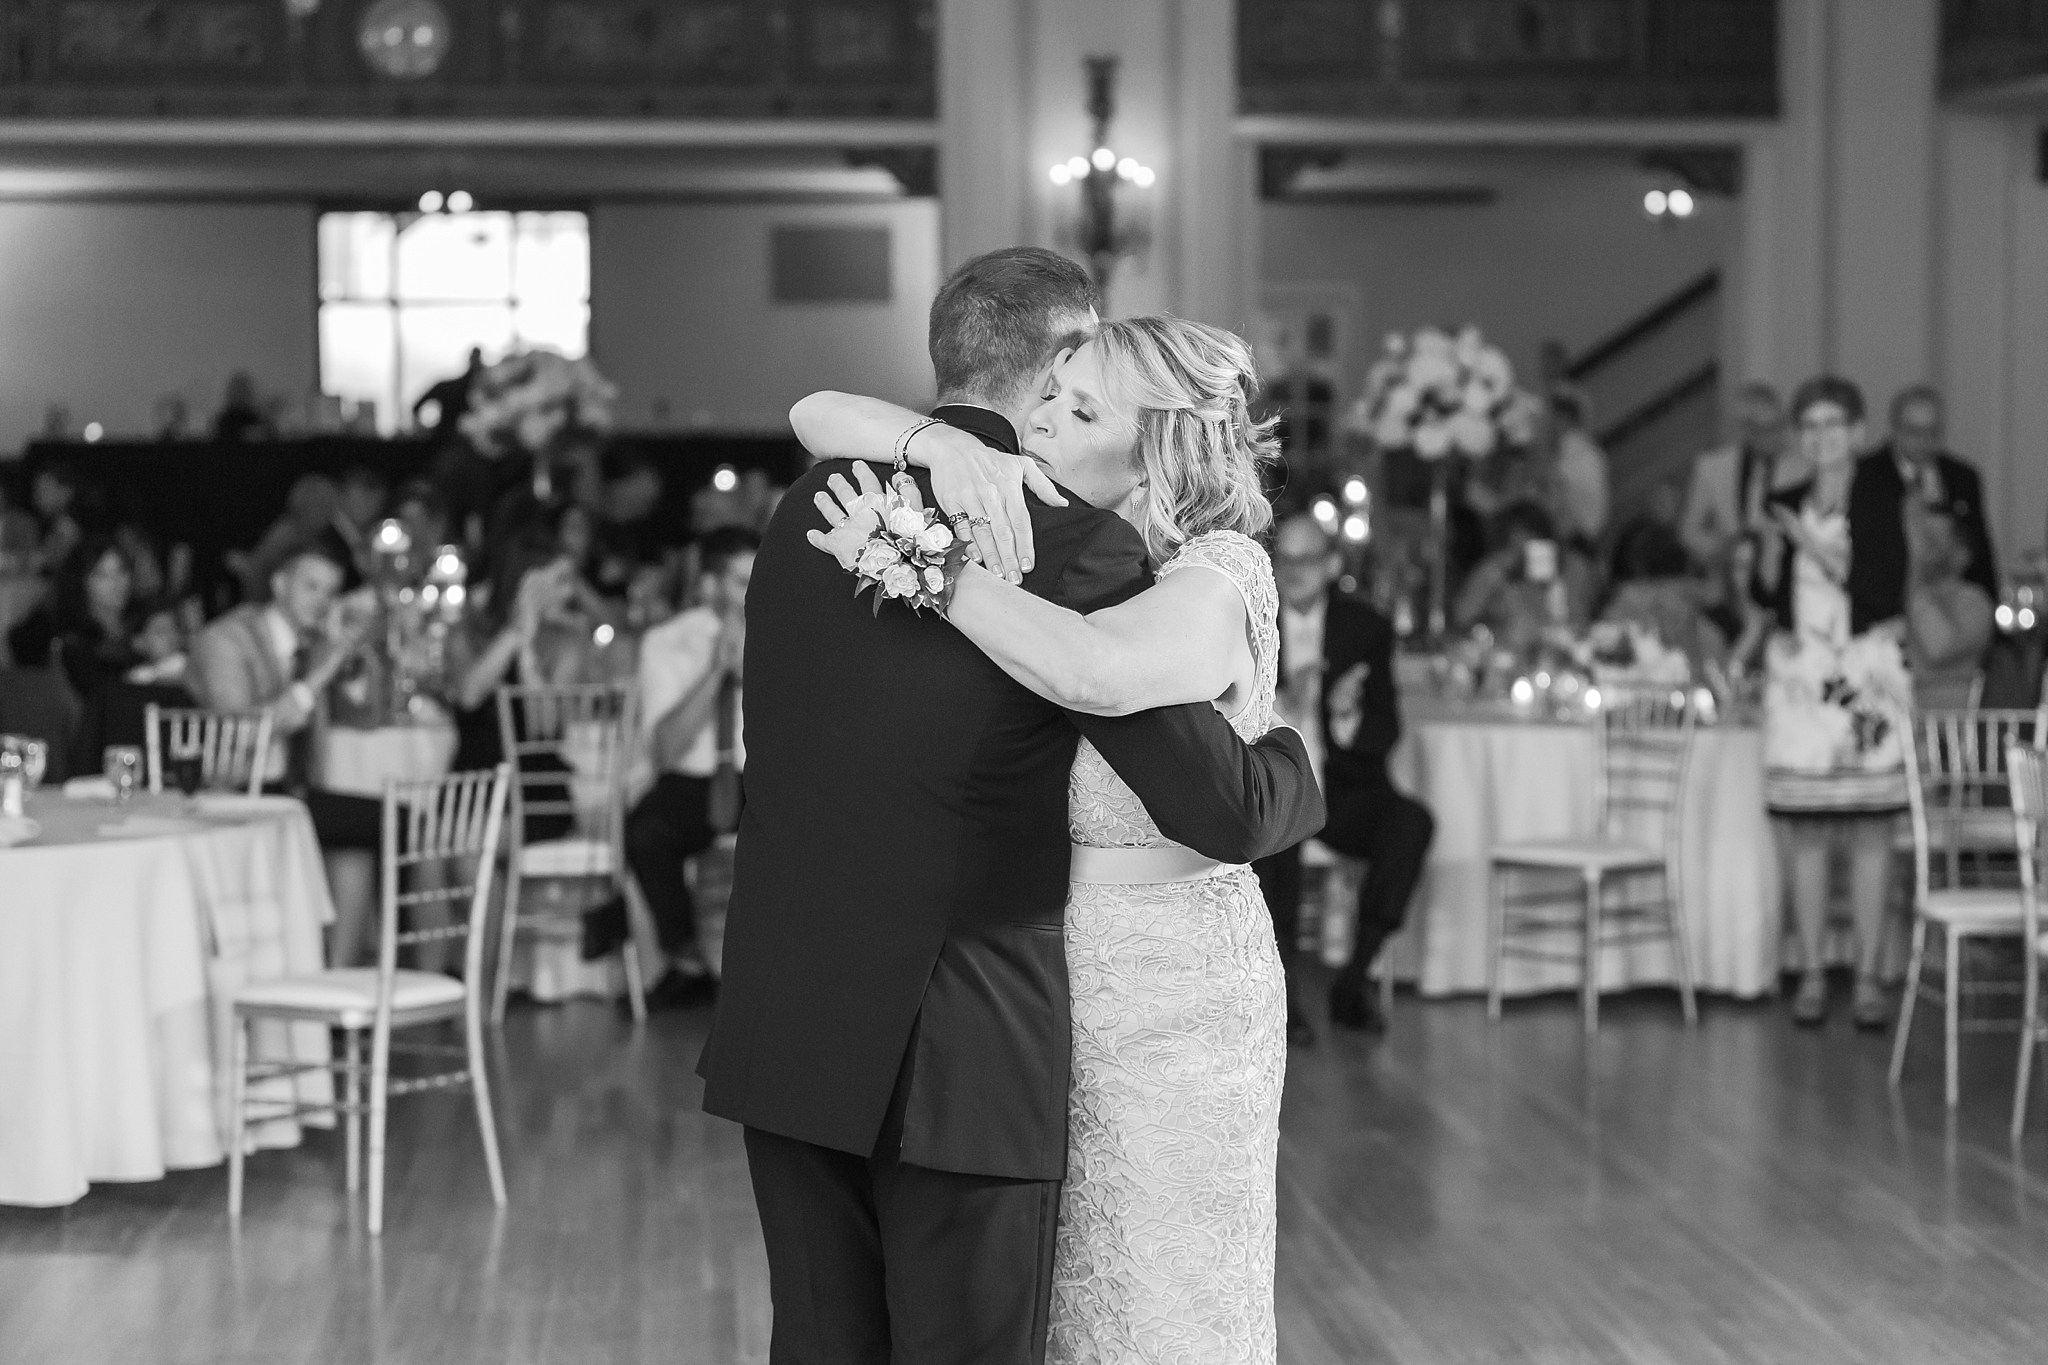 candid-romantic-wedding-photos-at-the-masonic-temple-belle-isle-detroit-institute-of-arts-in-detroit-michigan-by-courtney-carolyn-photography_0114.jpg